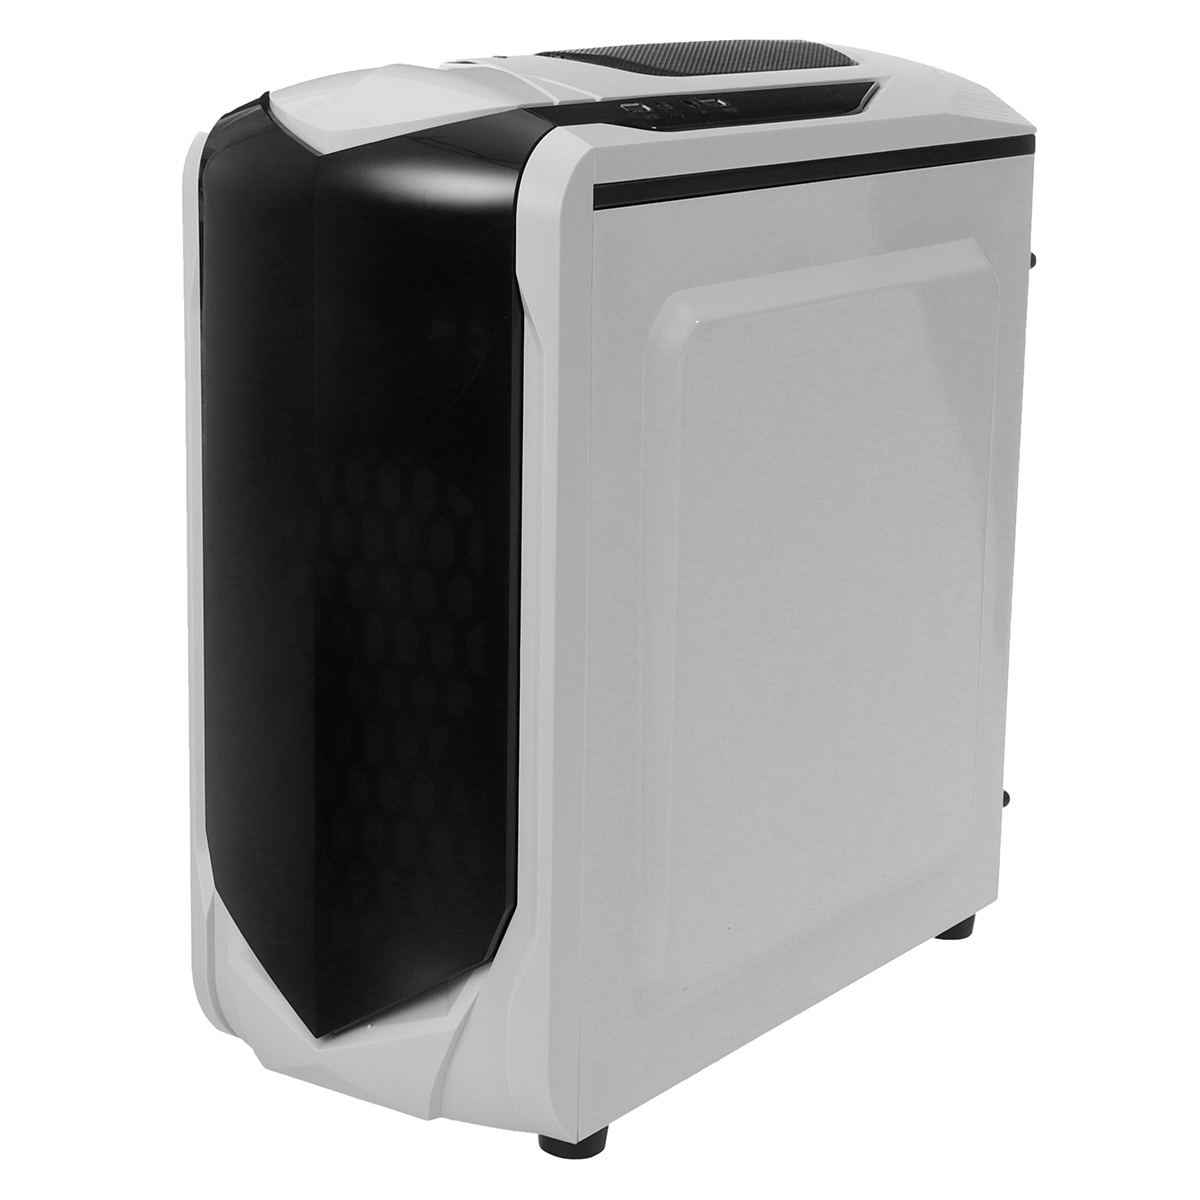 LEORY 375X185X380mm Transparant Side Panel Micro ATX Desktop PC Computer PC Case Ondersteuning 180mm brede CPU Radiator